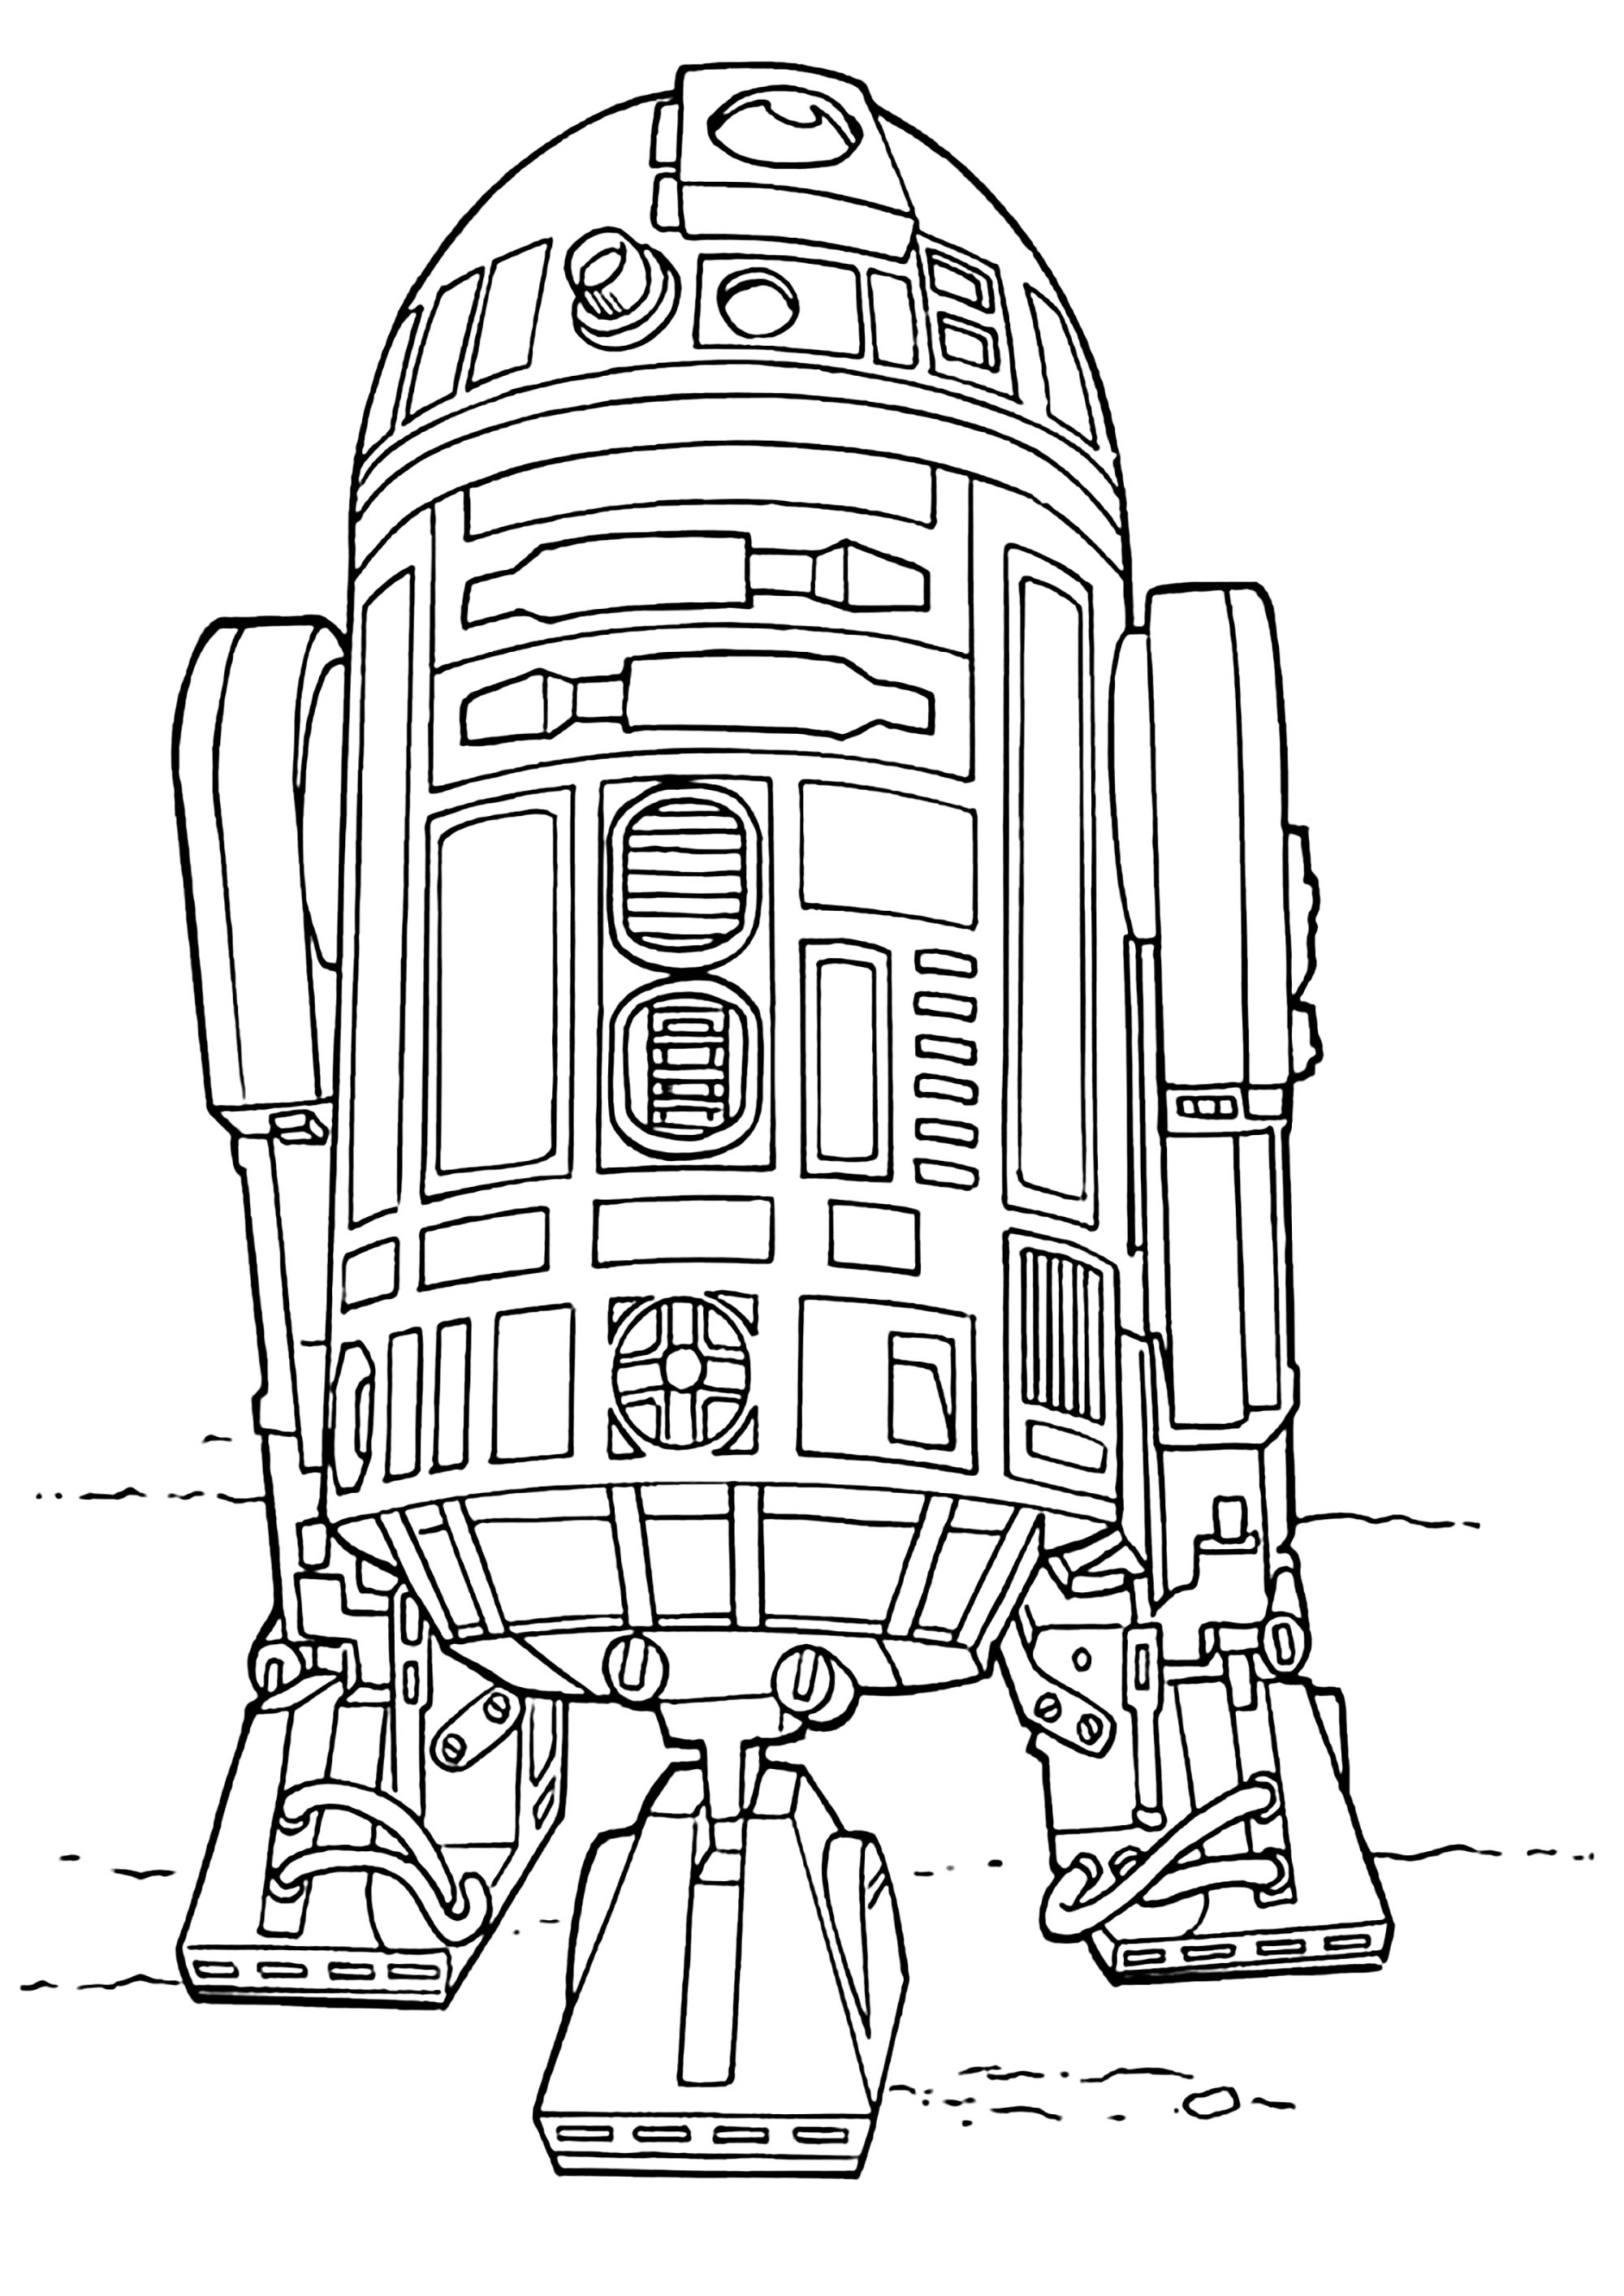 star wars colouring for kids free printable star wars coloring pages free printable wars colouring for kids star